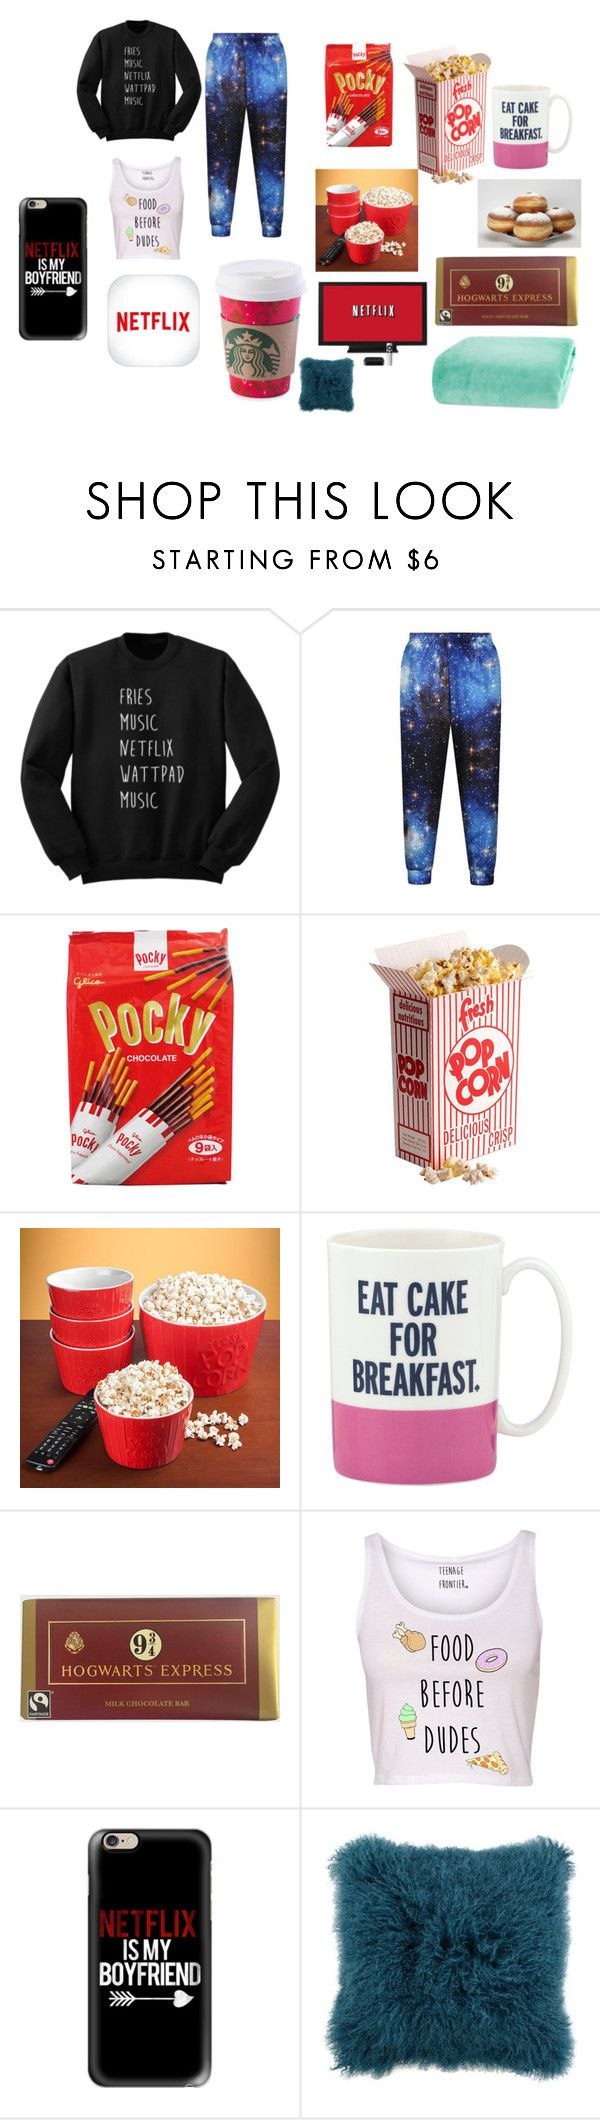 """netflix!"" by courtneyn-i on Polyvore featuring interior, interiors, interior design, home, home decor, interior decorating, Kate Spade, Casetify and Berkshire Blanket"